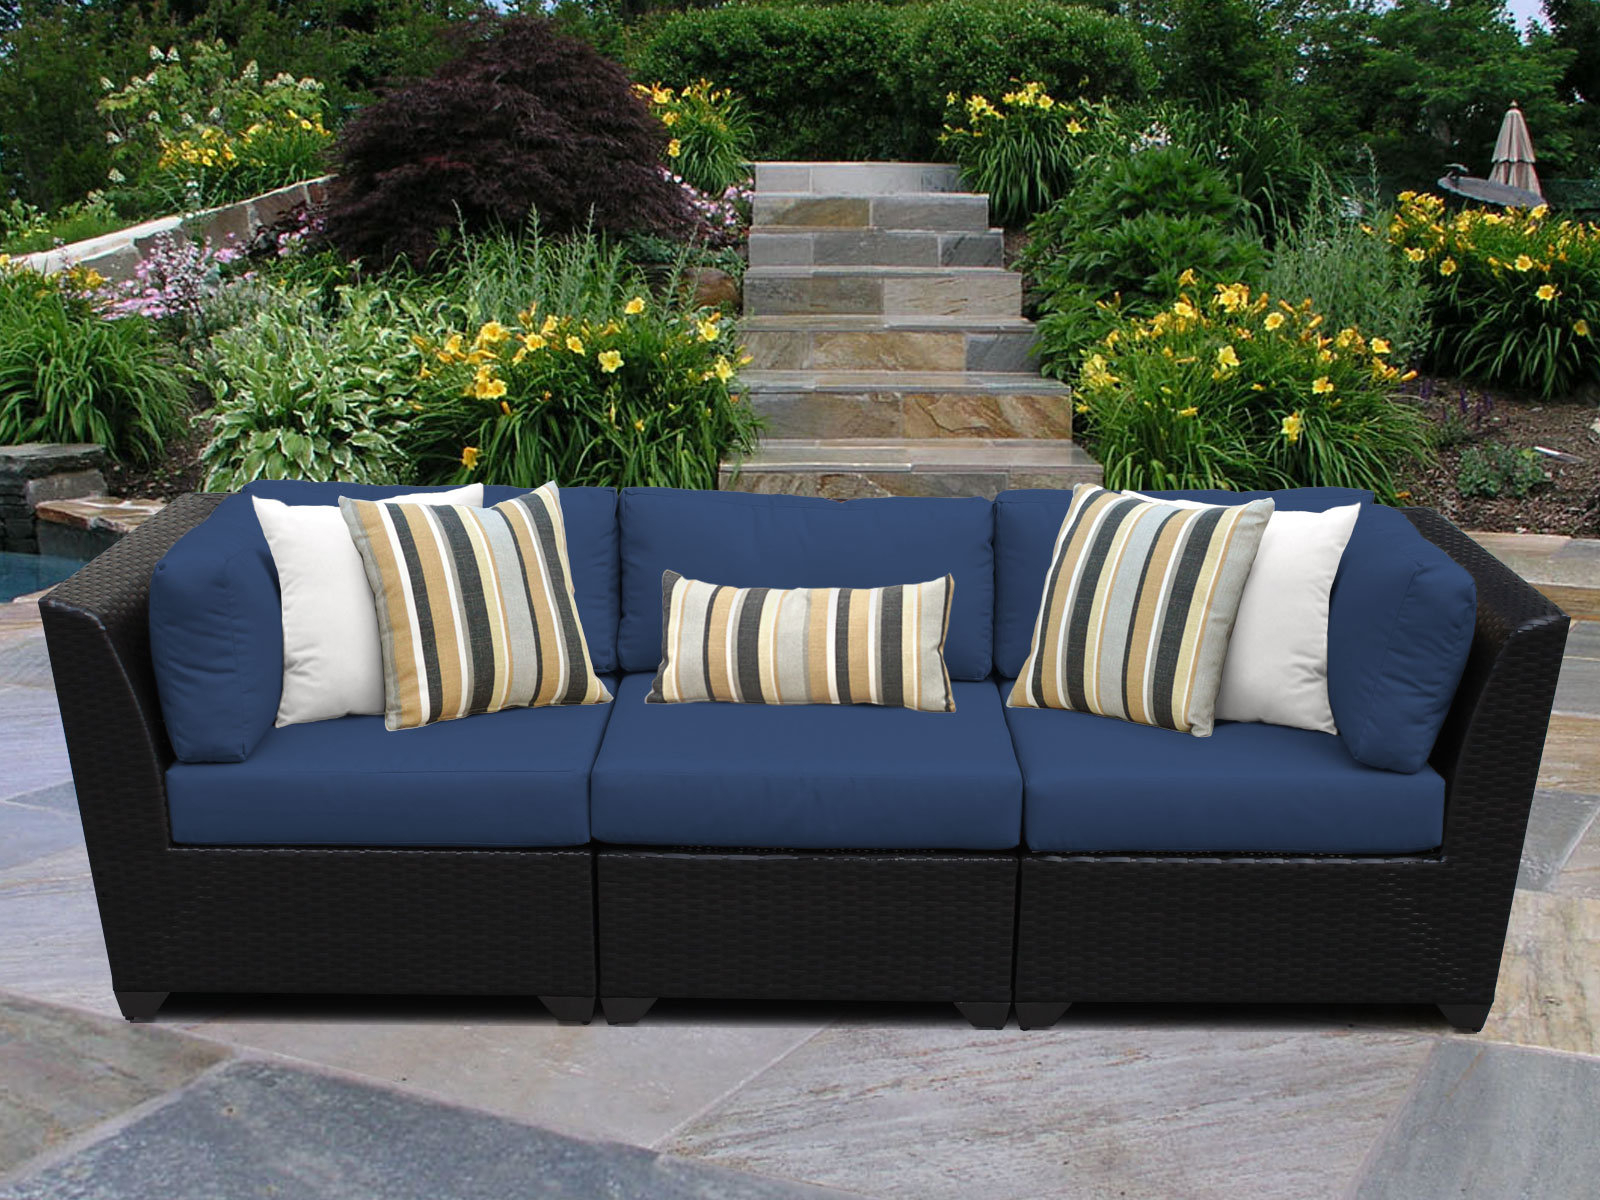 Most Recently Released Keiran Patio Sofas With Cushions With Regard To Camak Patio Sofa With Cushions (View 16 of 20)